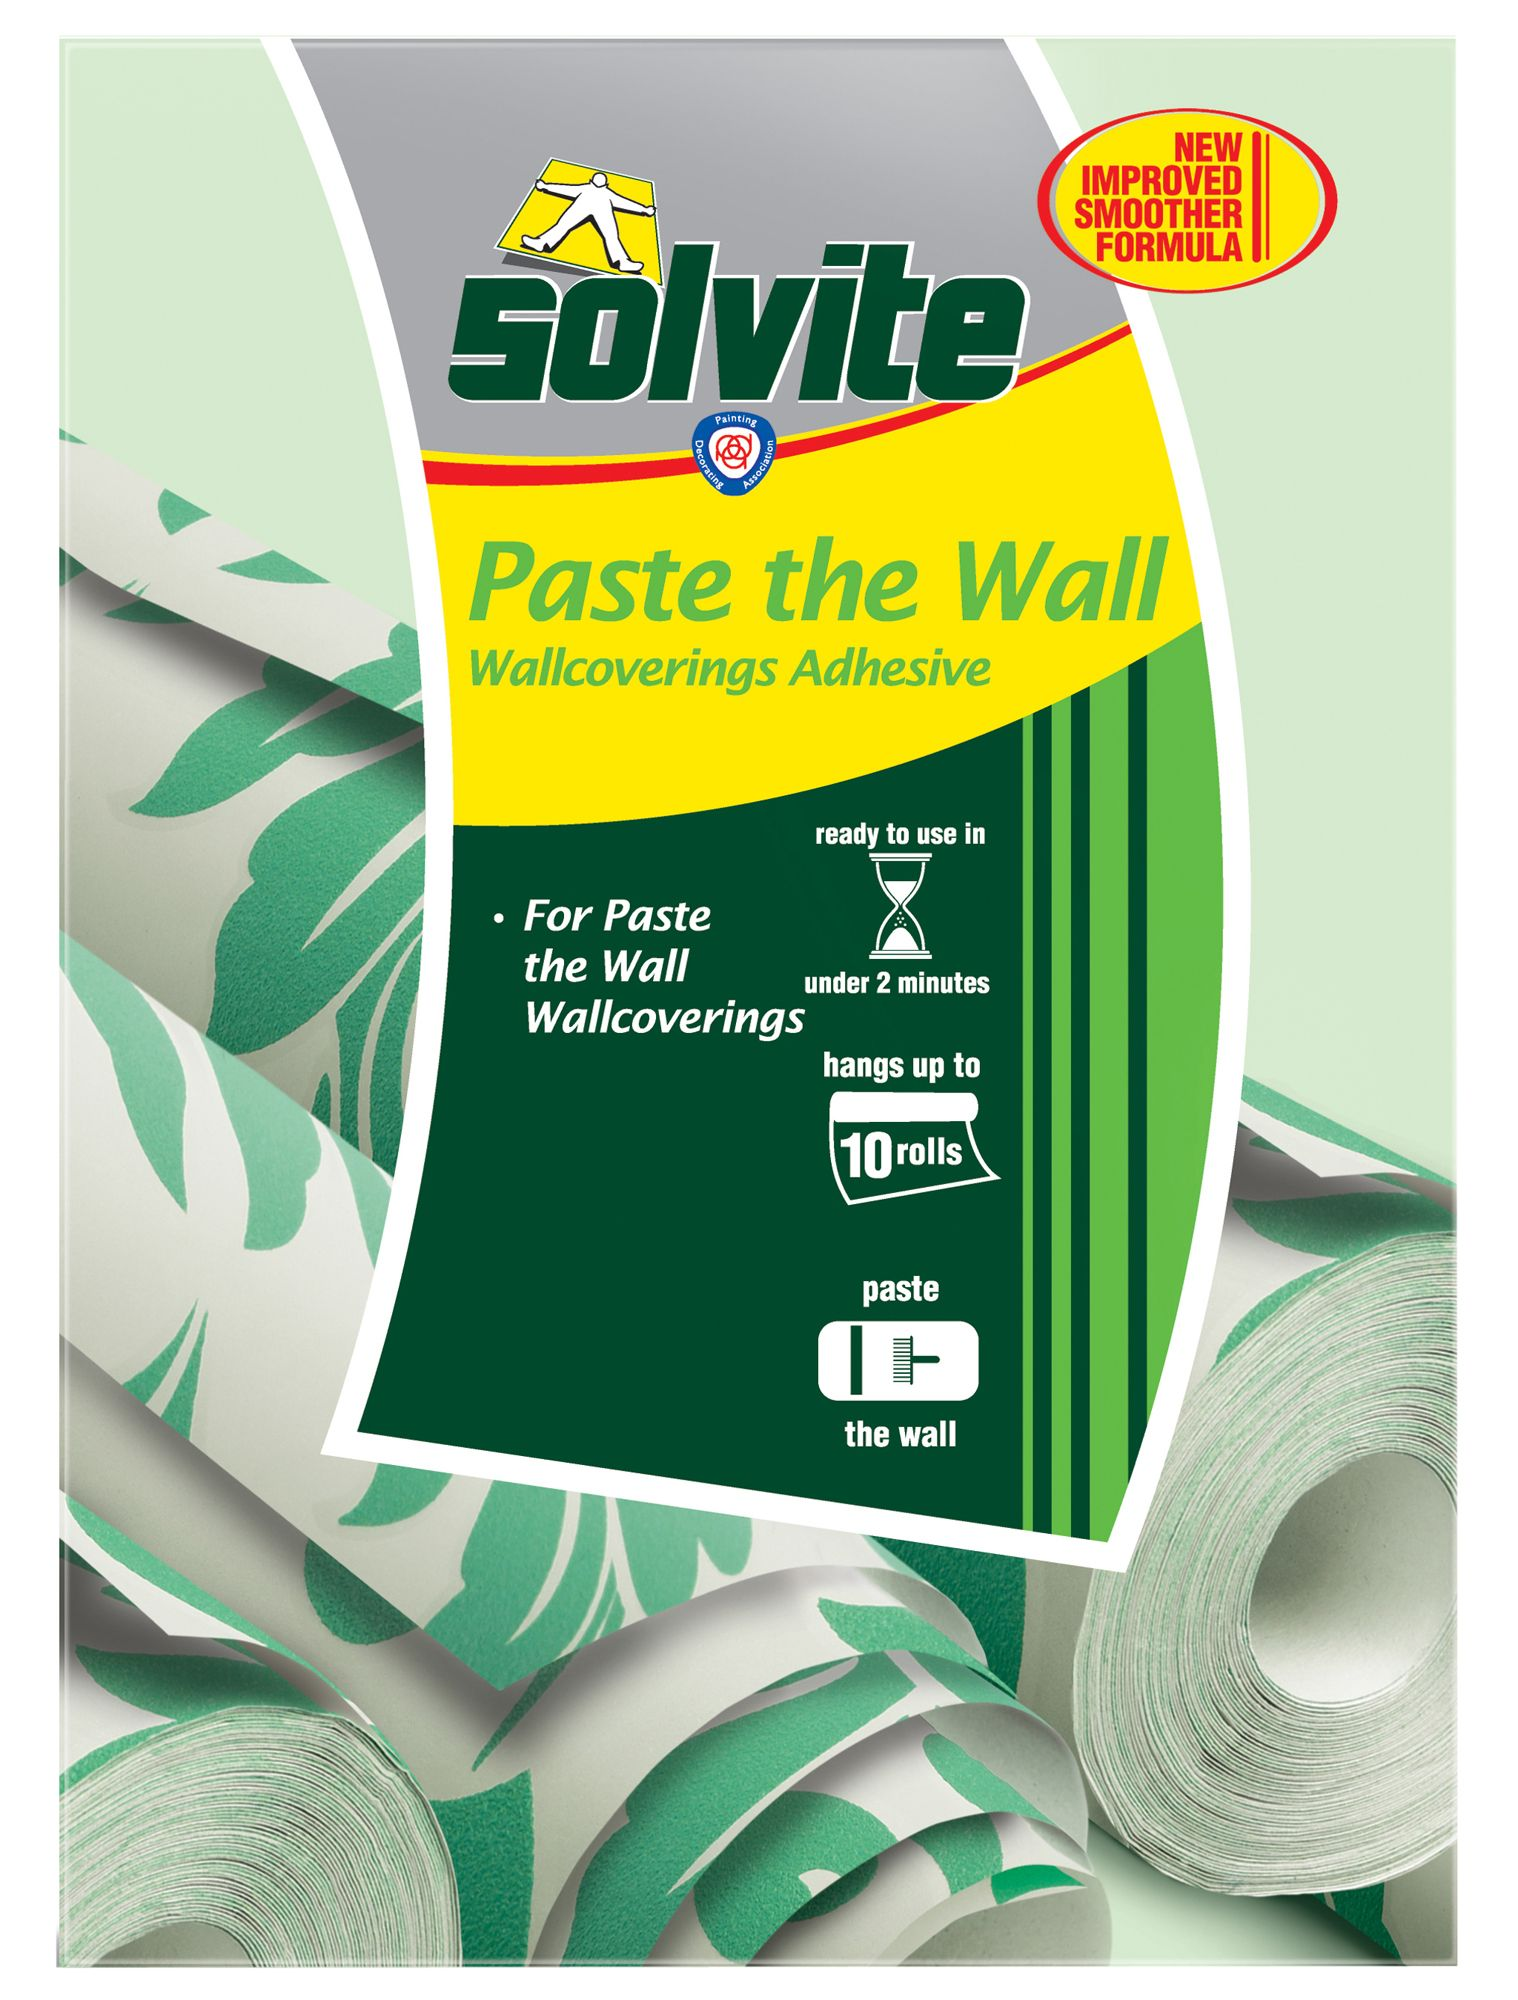 What Paste To Use For Paste The Wall Wallpaper